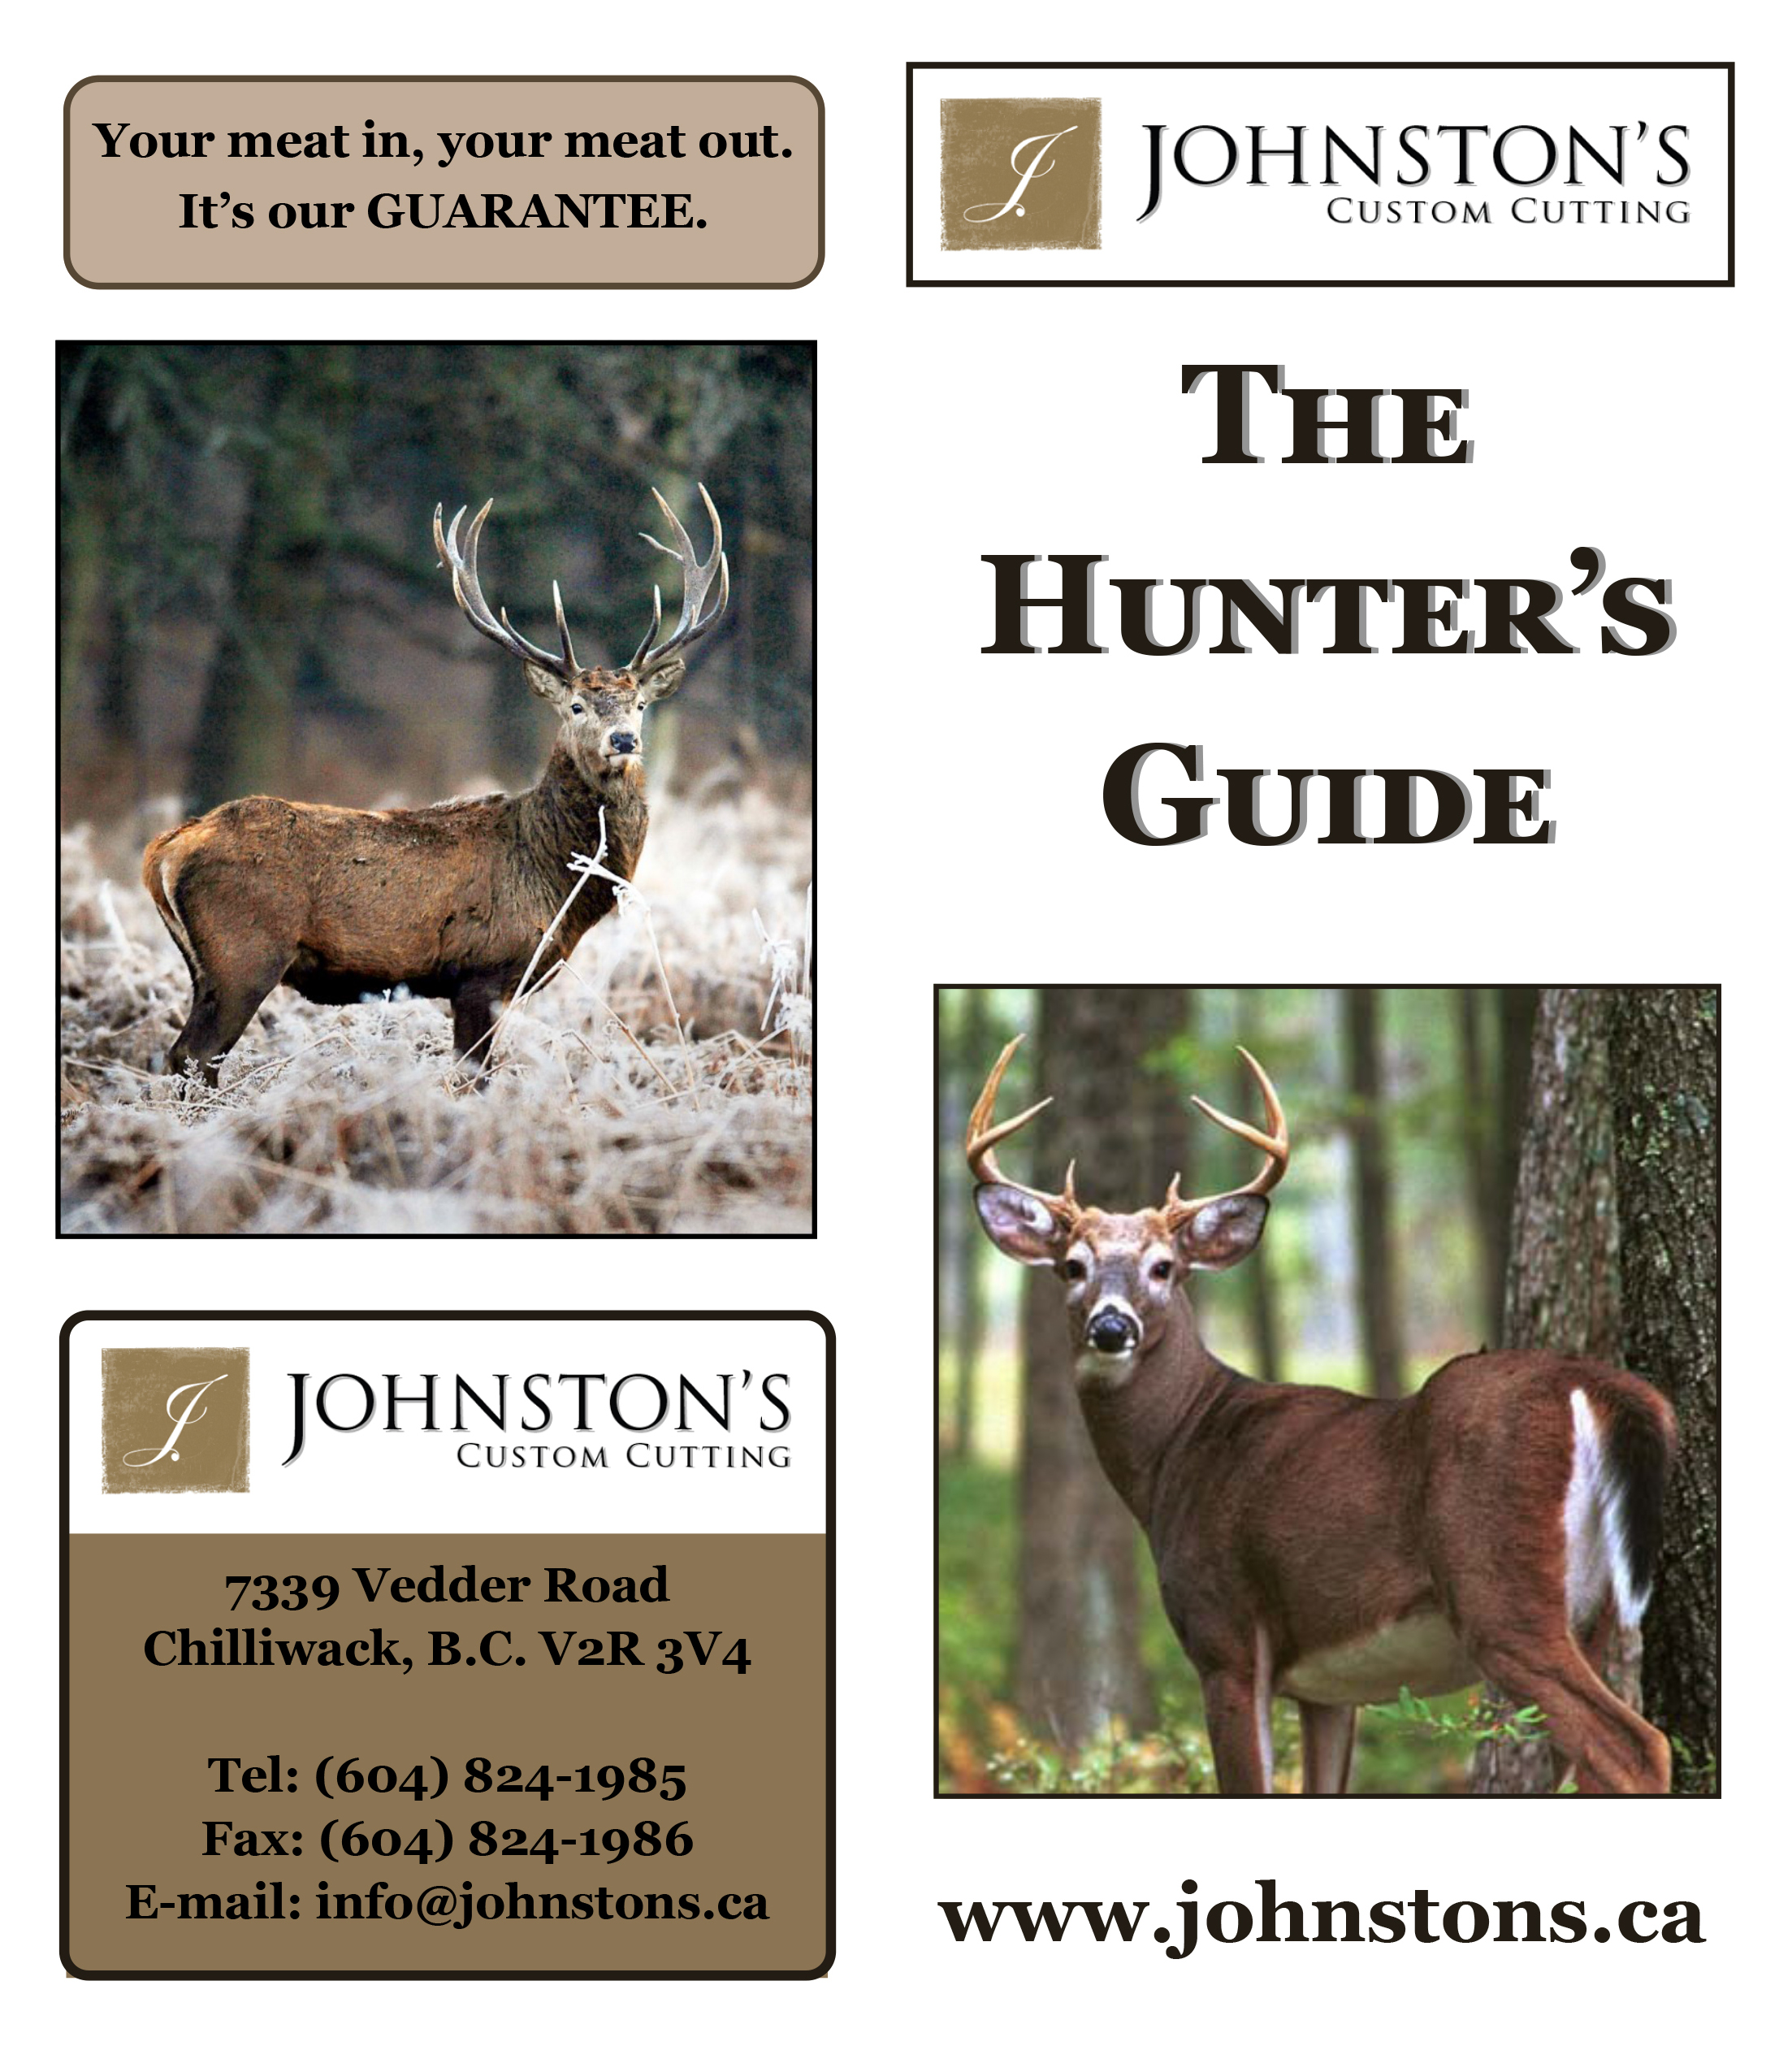 hunters-guide-rv-3-2